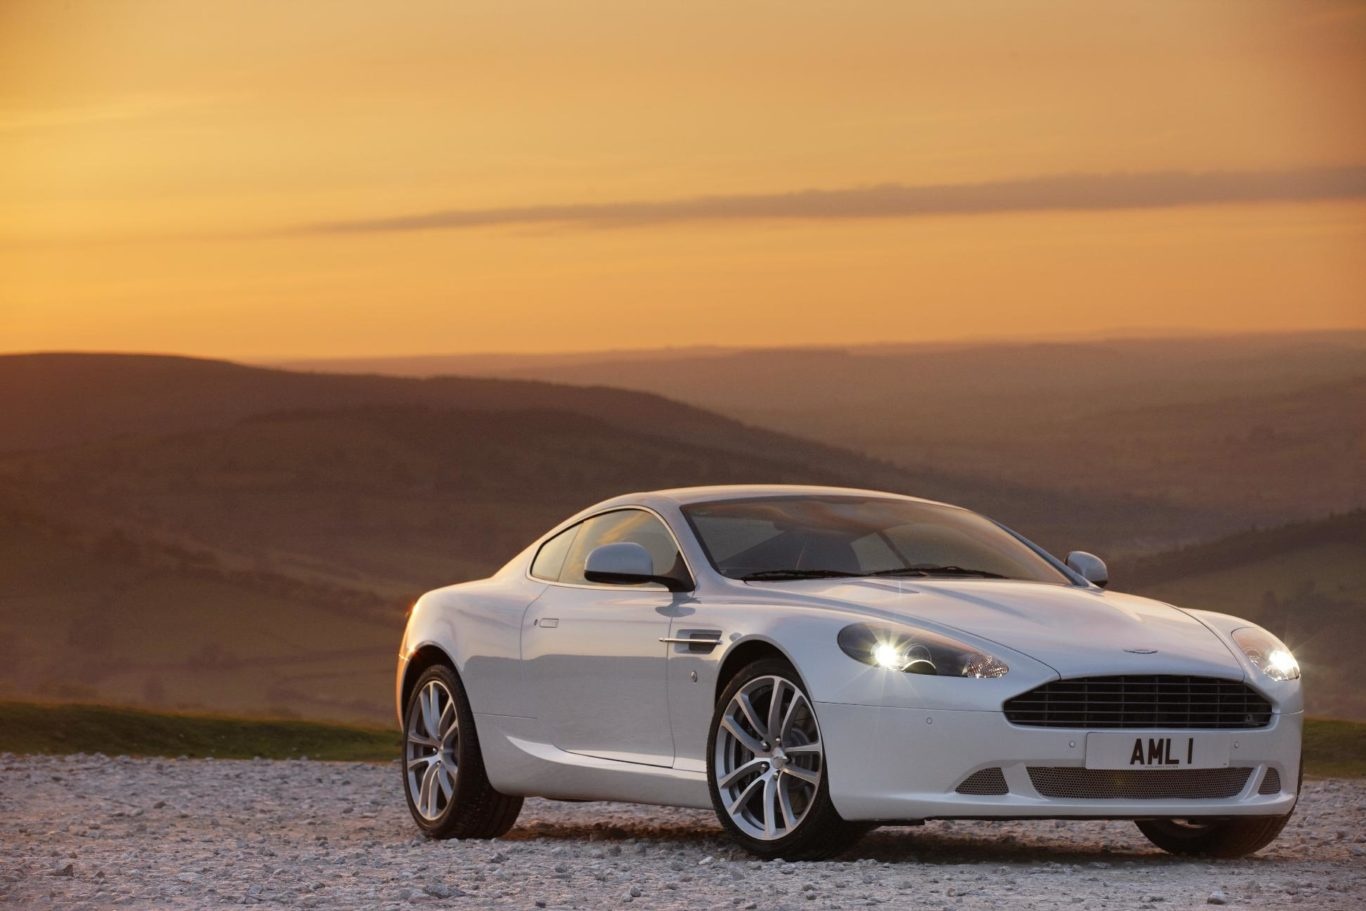 The DB9 heralded a new age for Aston Martin